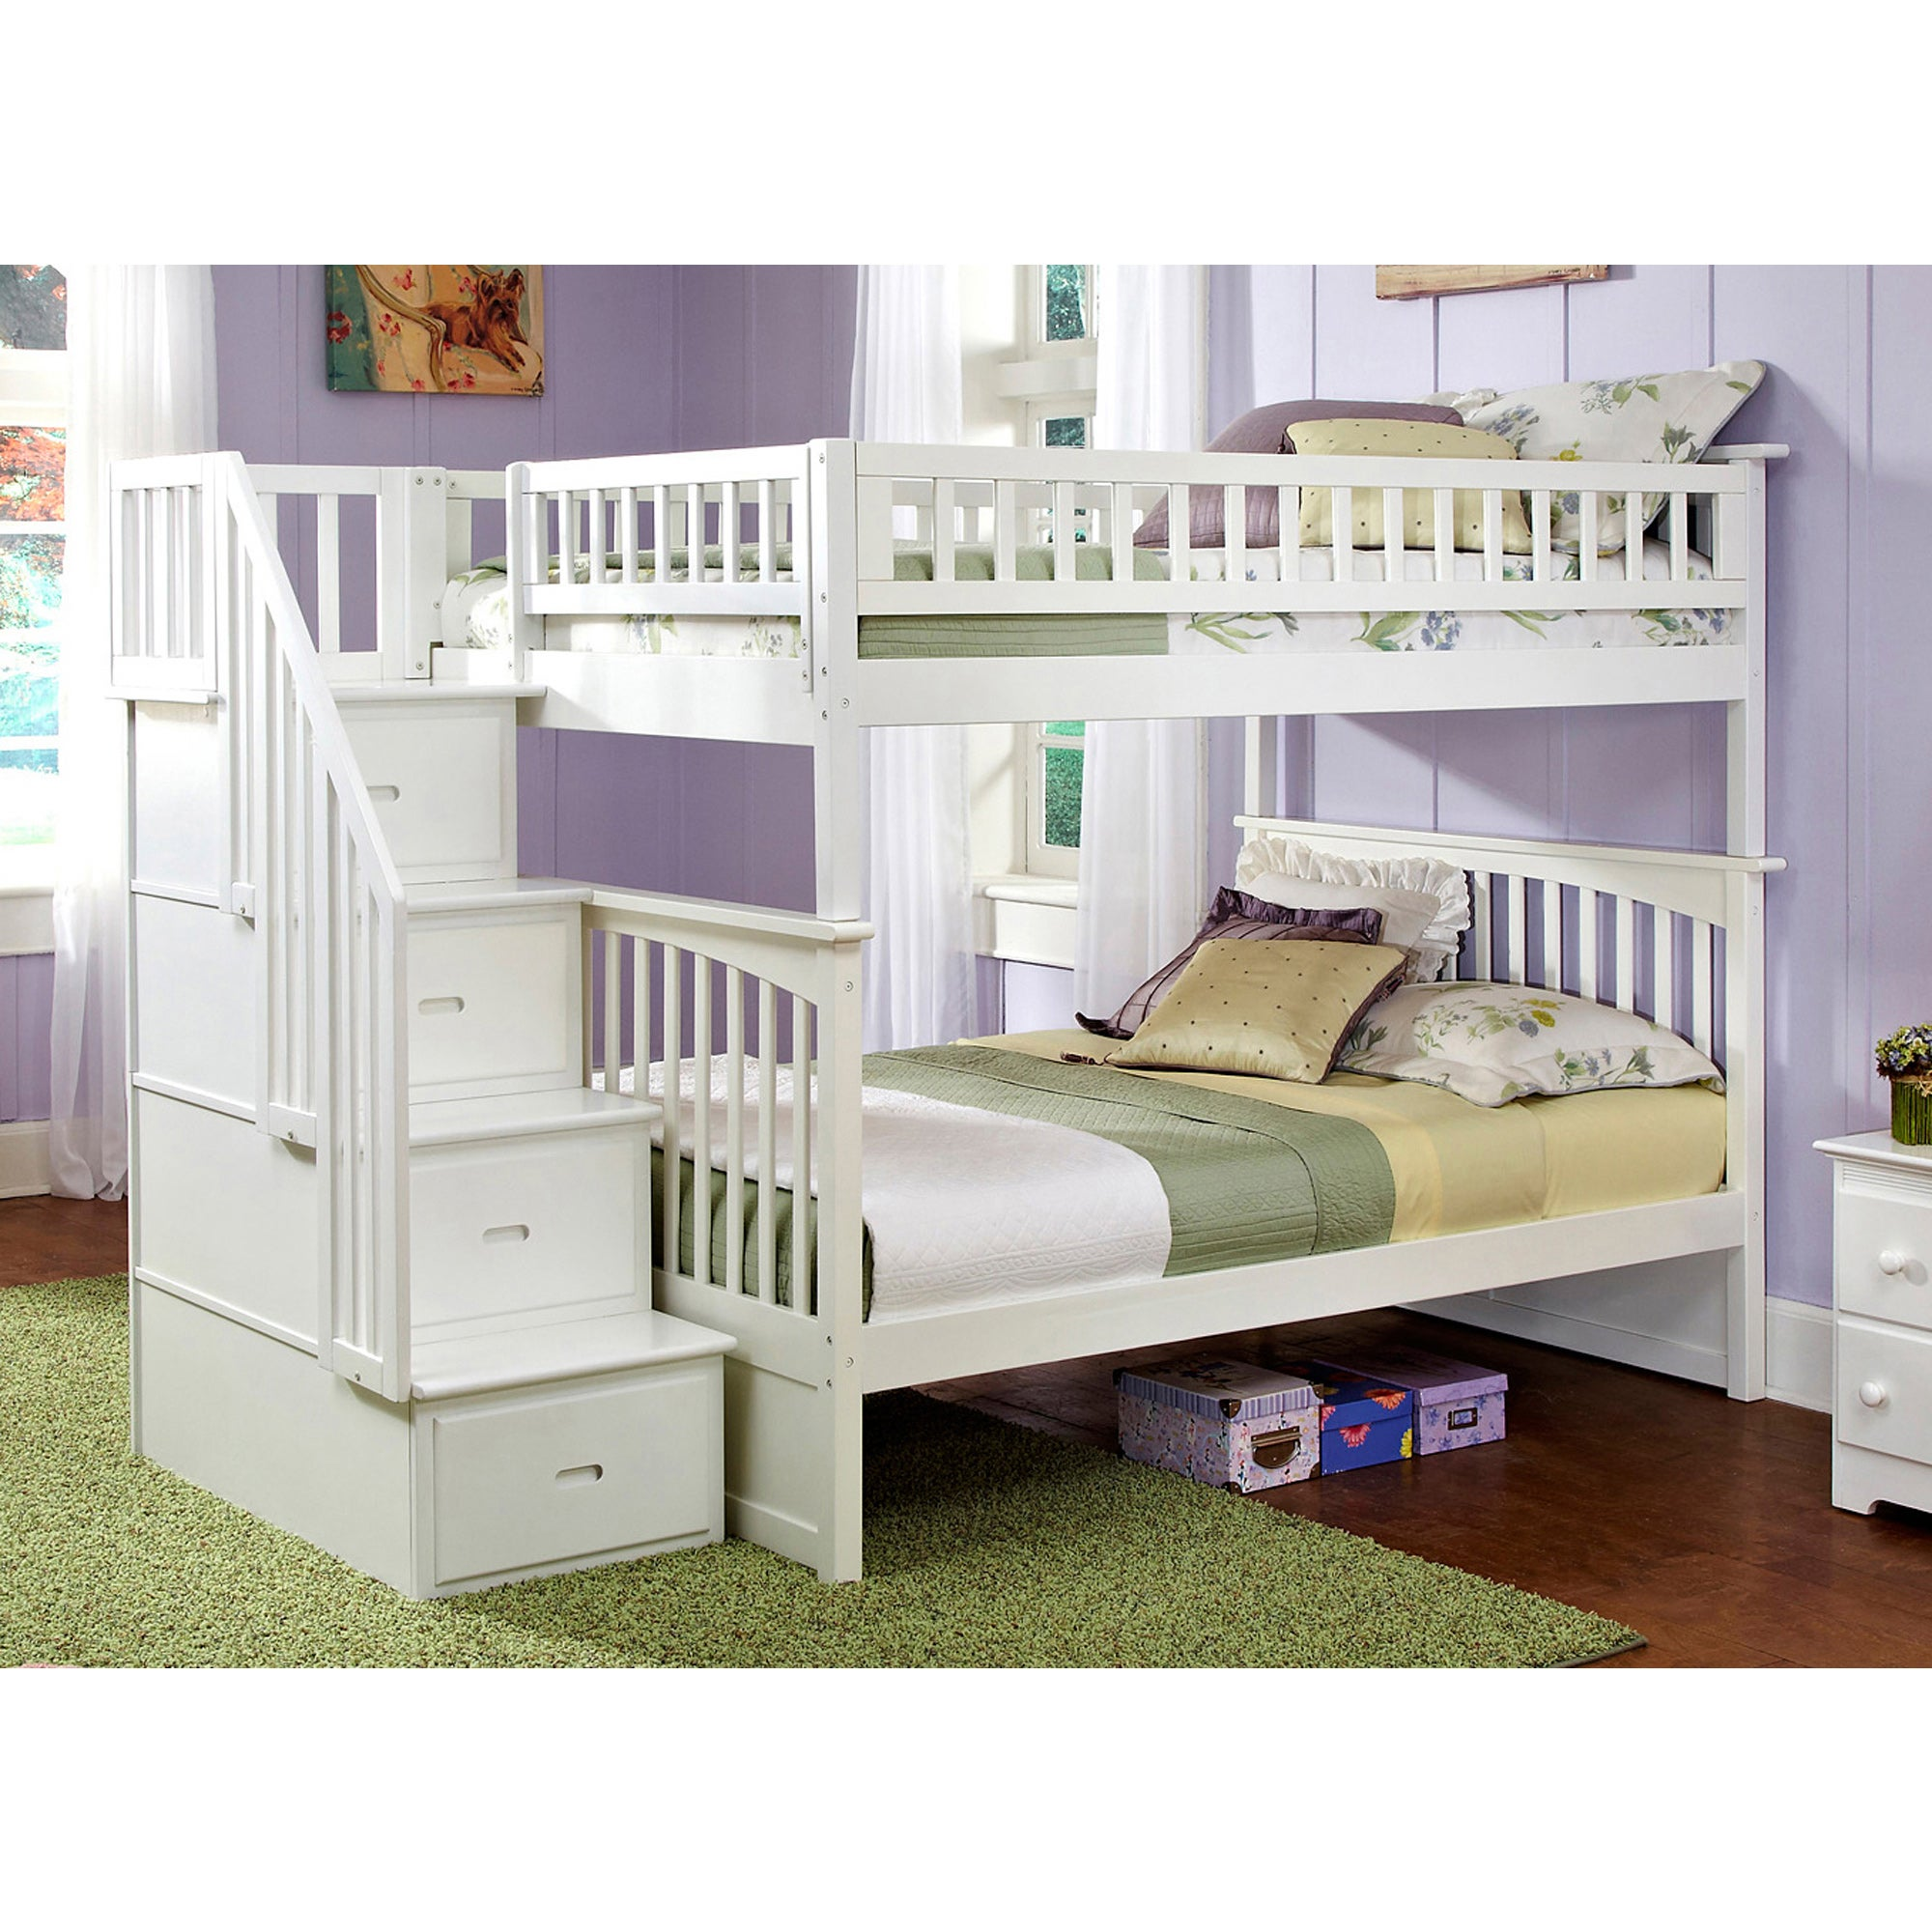 Atlantic Furniture Columbia Staircase Bunk Bed Full over ...